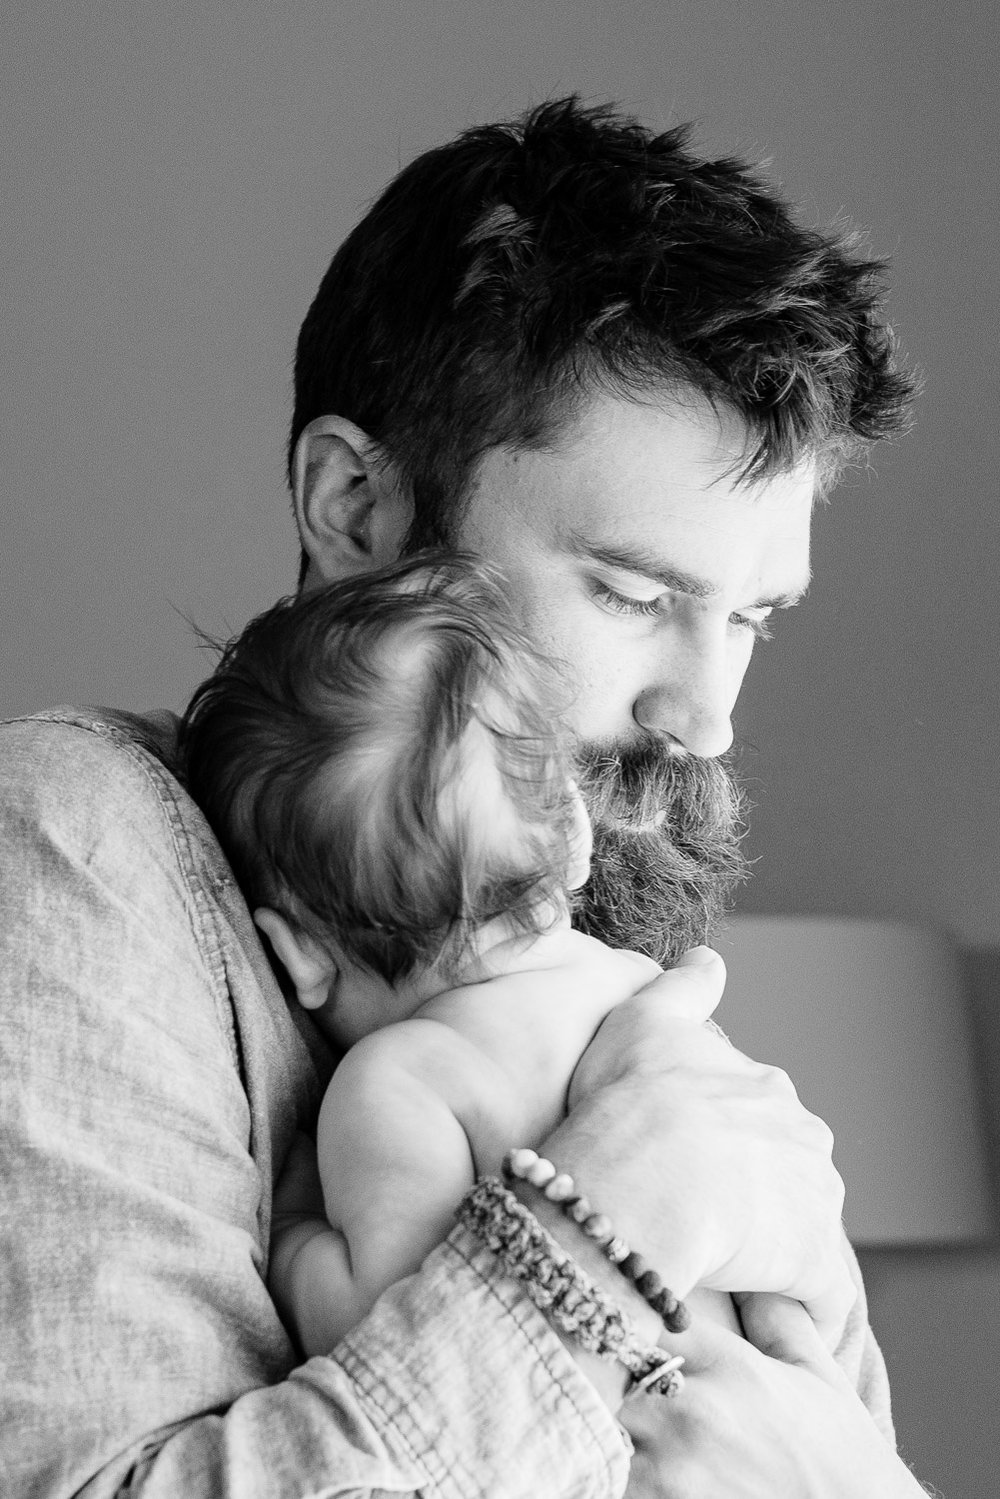 Black and white image of daddy holding his newborn baby girl on his shoulder.